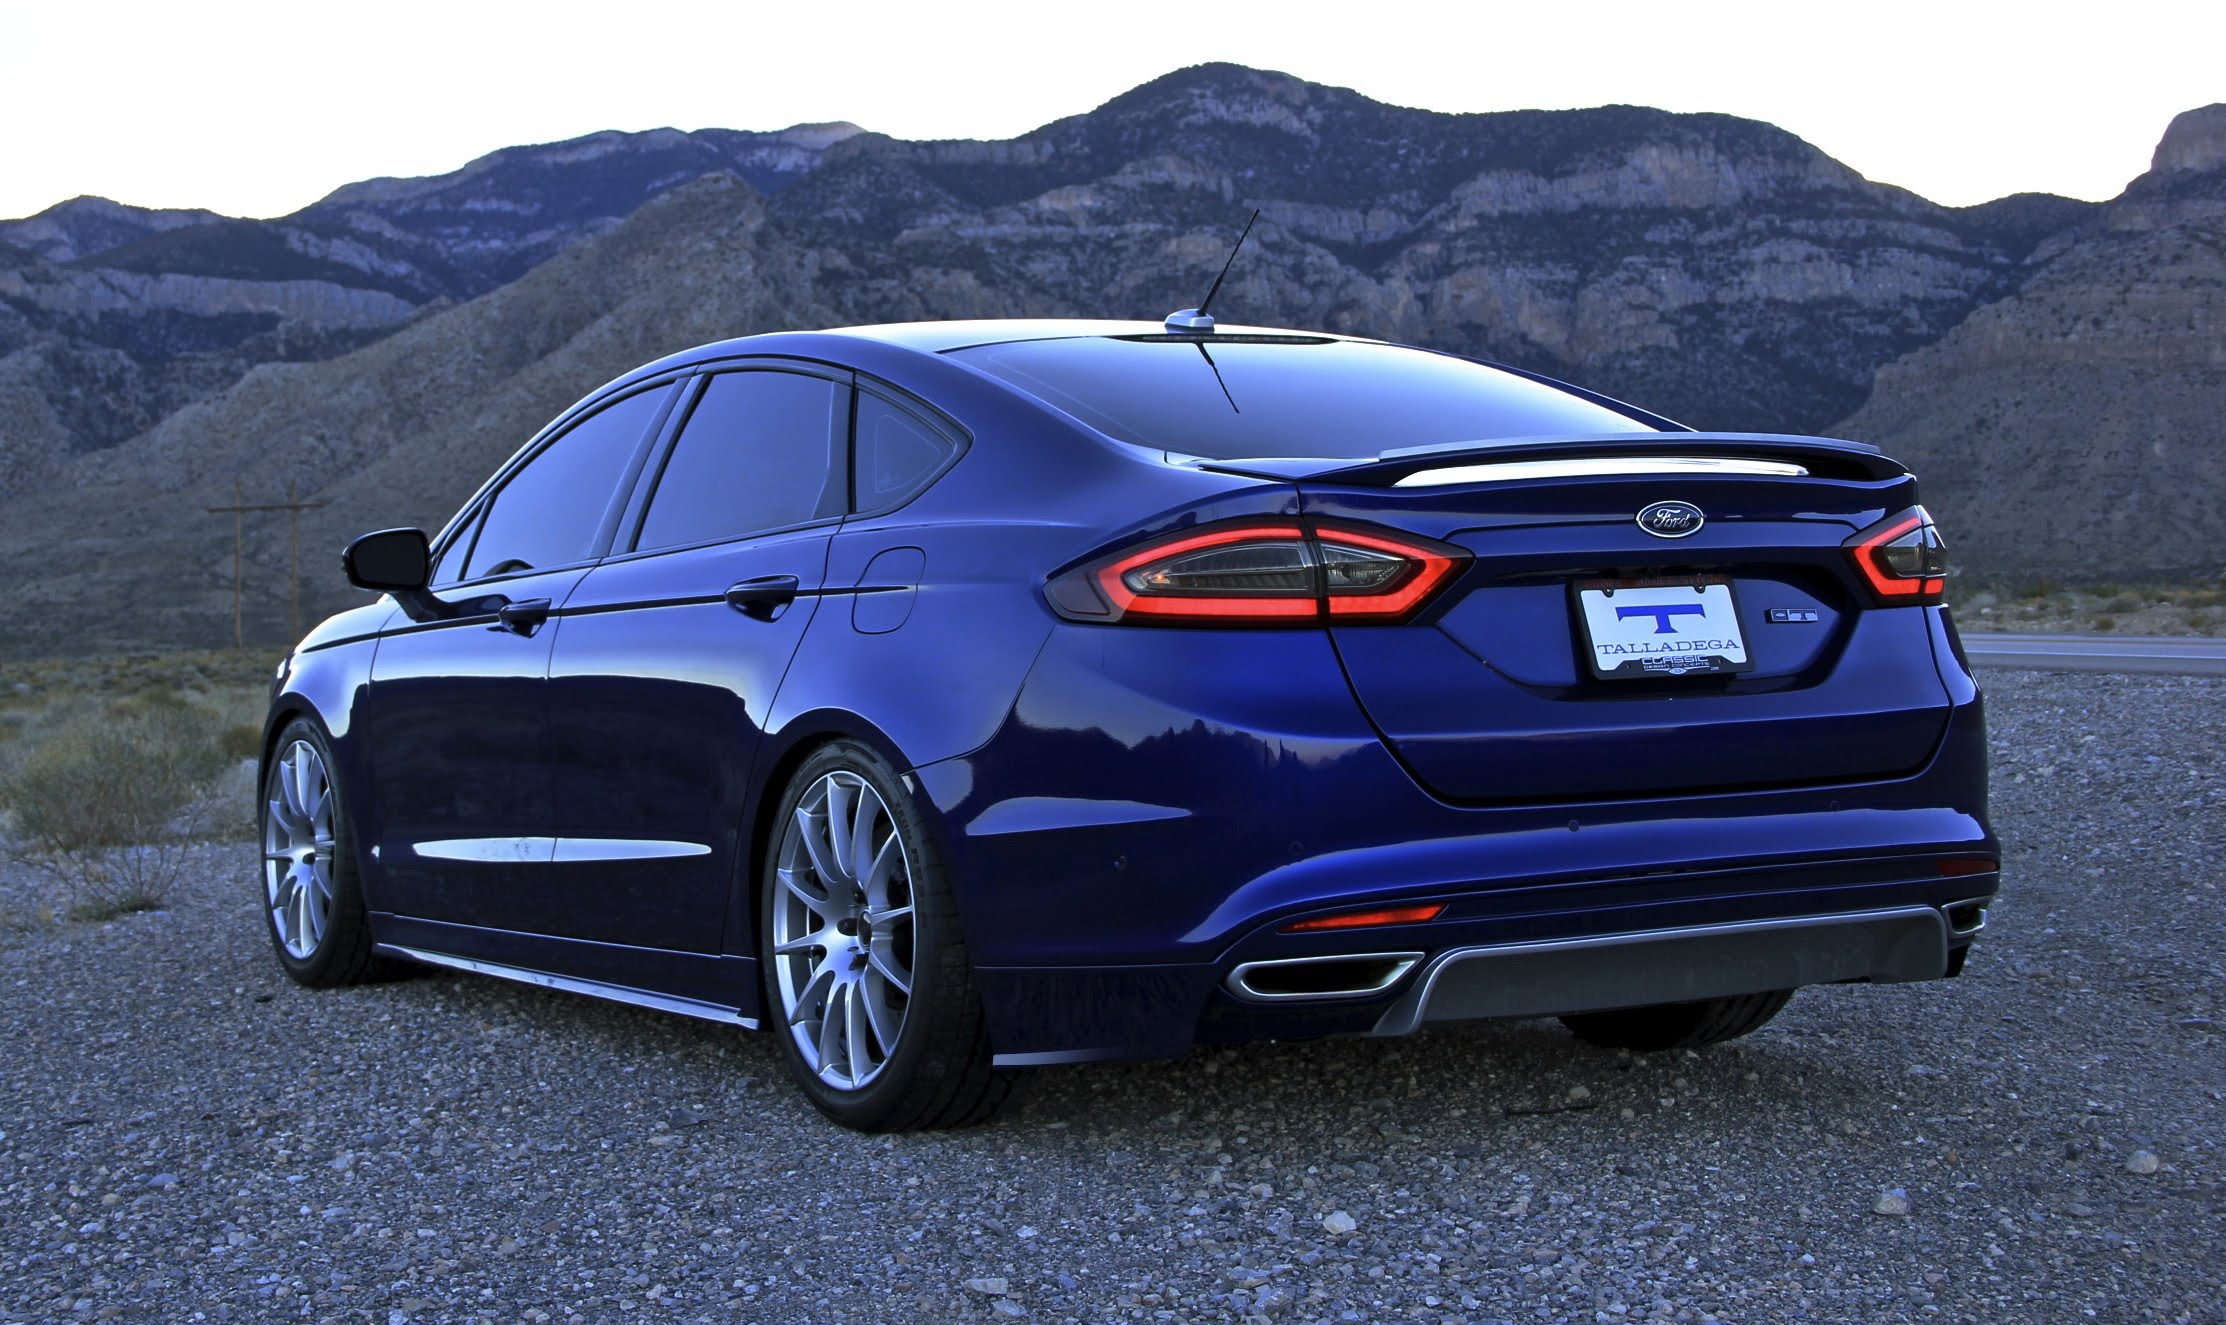 2013 Ford Fusion Hd Wallpapers 7wallpapers Net